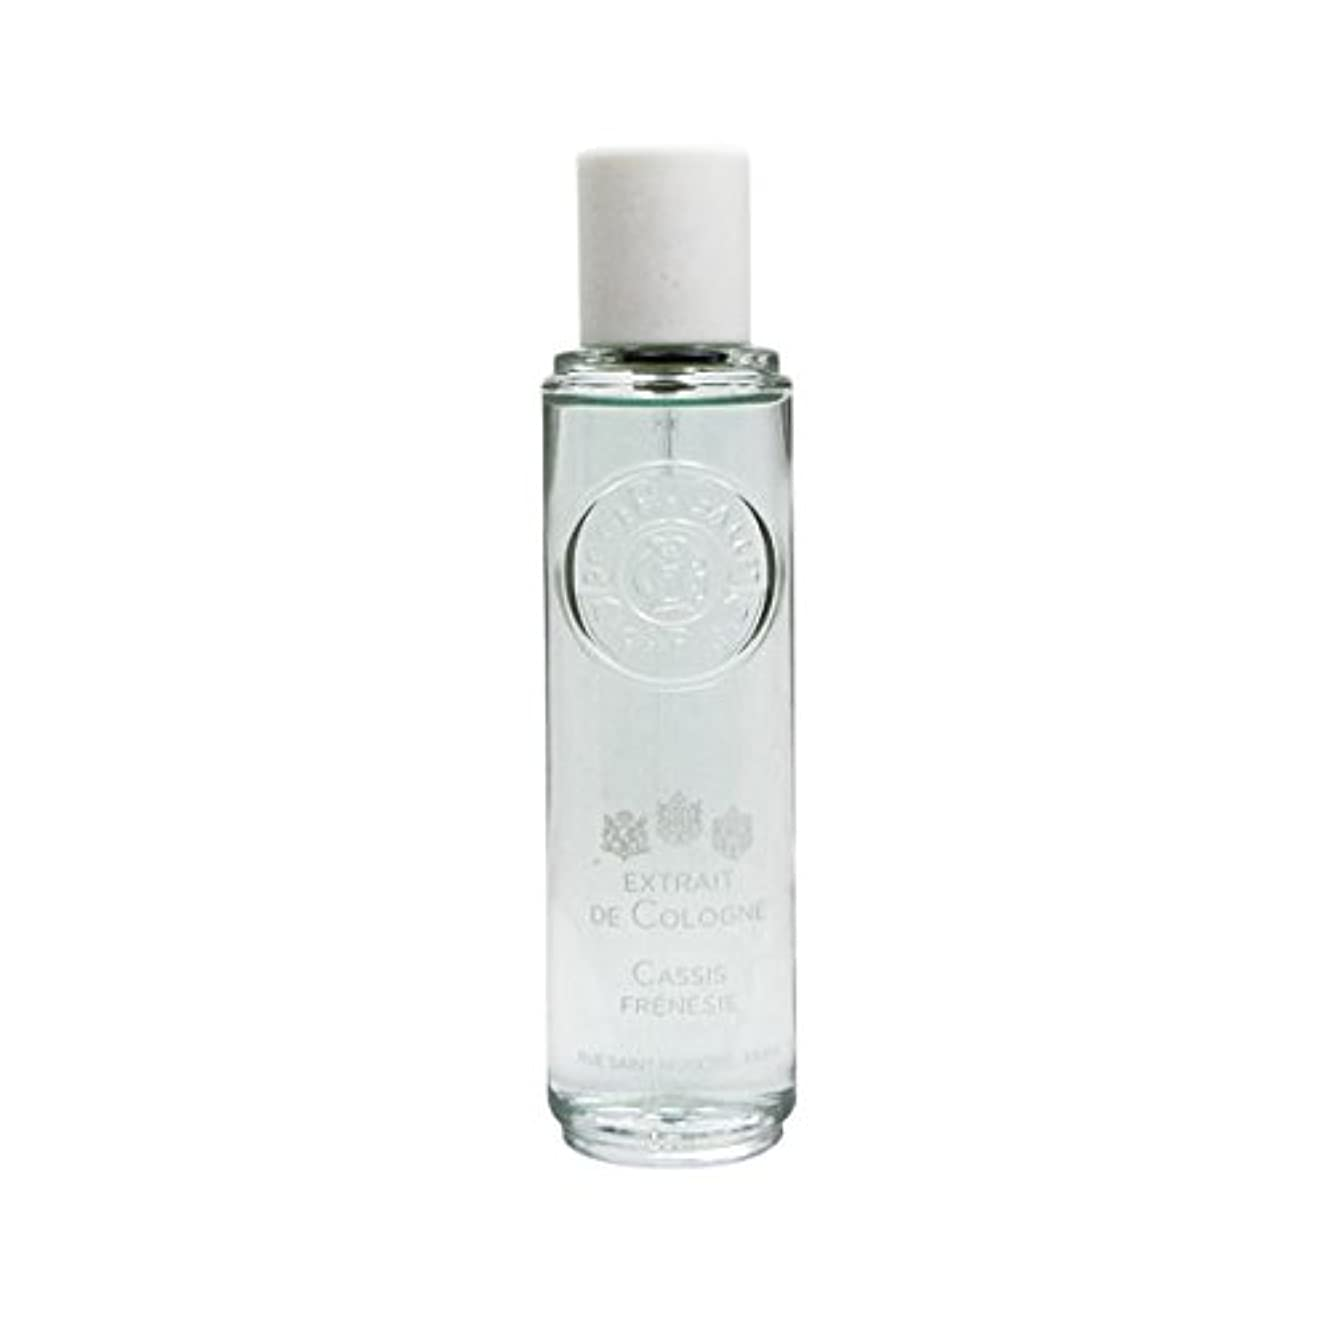 Roger Gallet Extract Of Cologne Cassis Frenesie 30ml [並行輸入品]